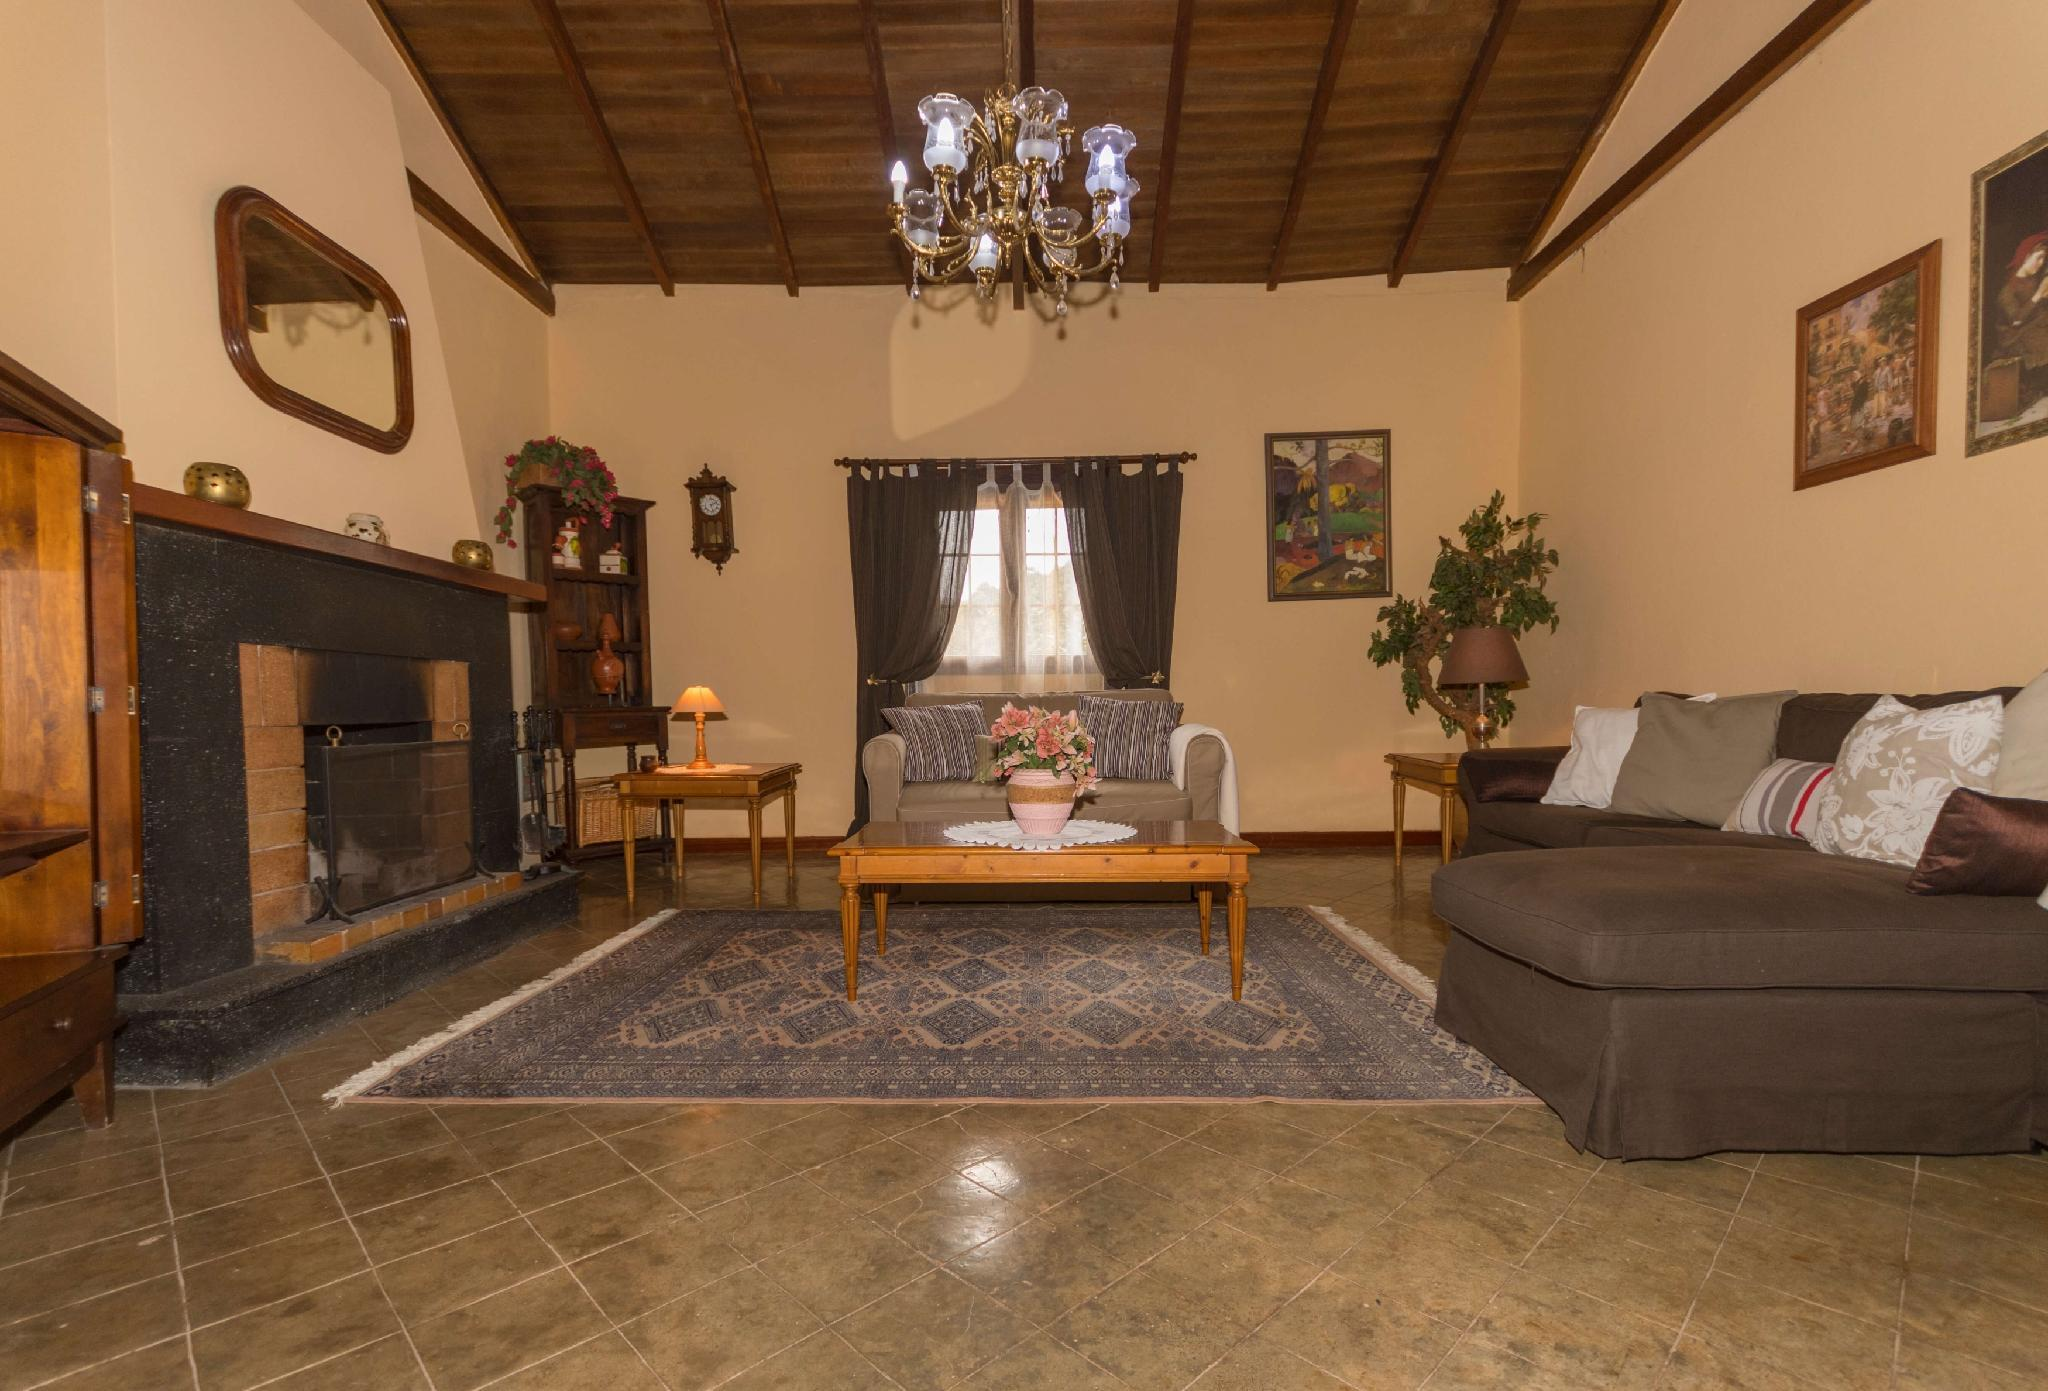 106800 - House in Valleseco